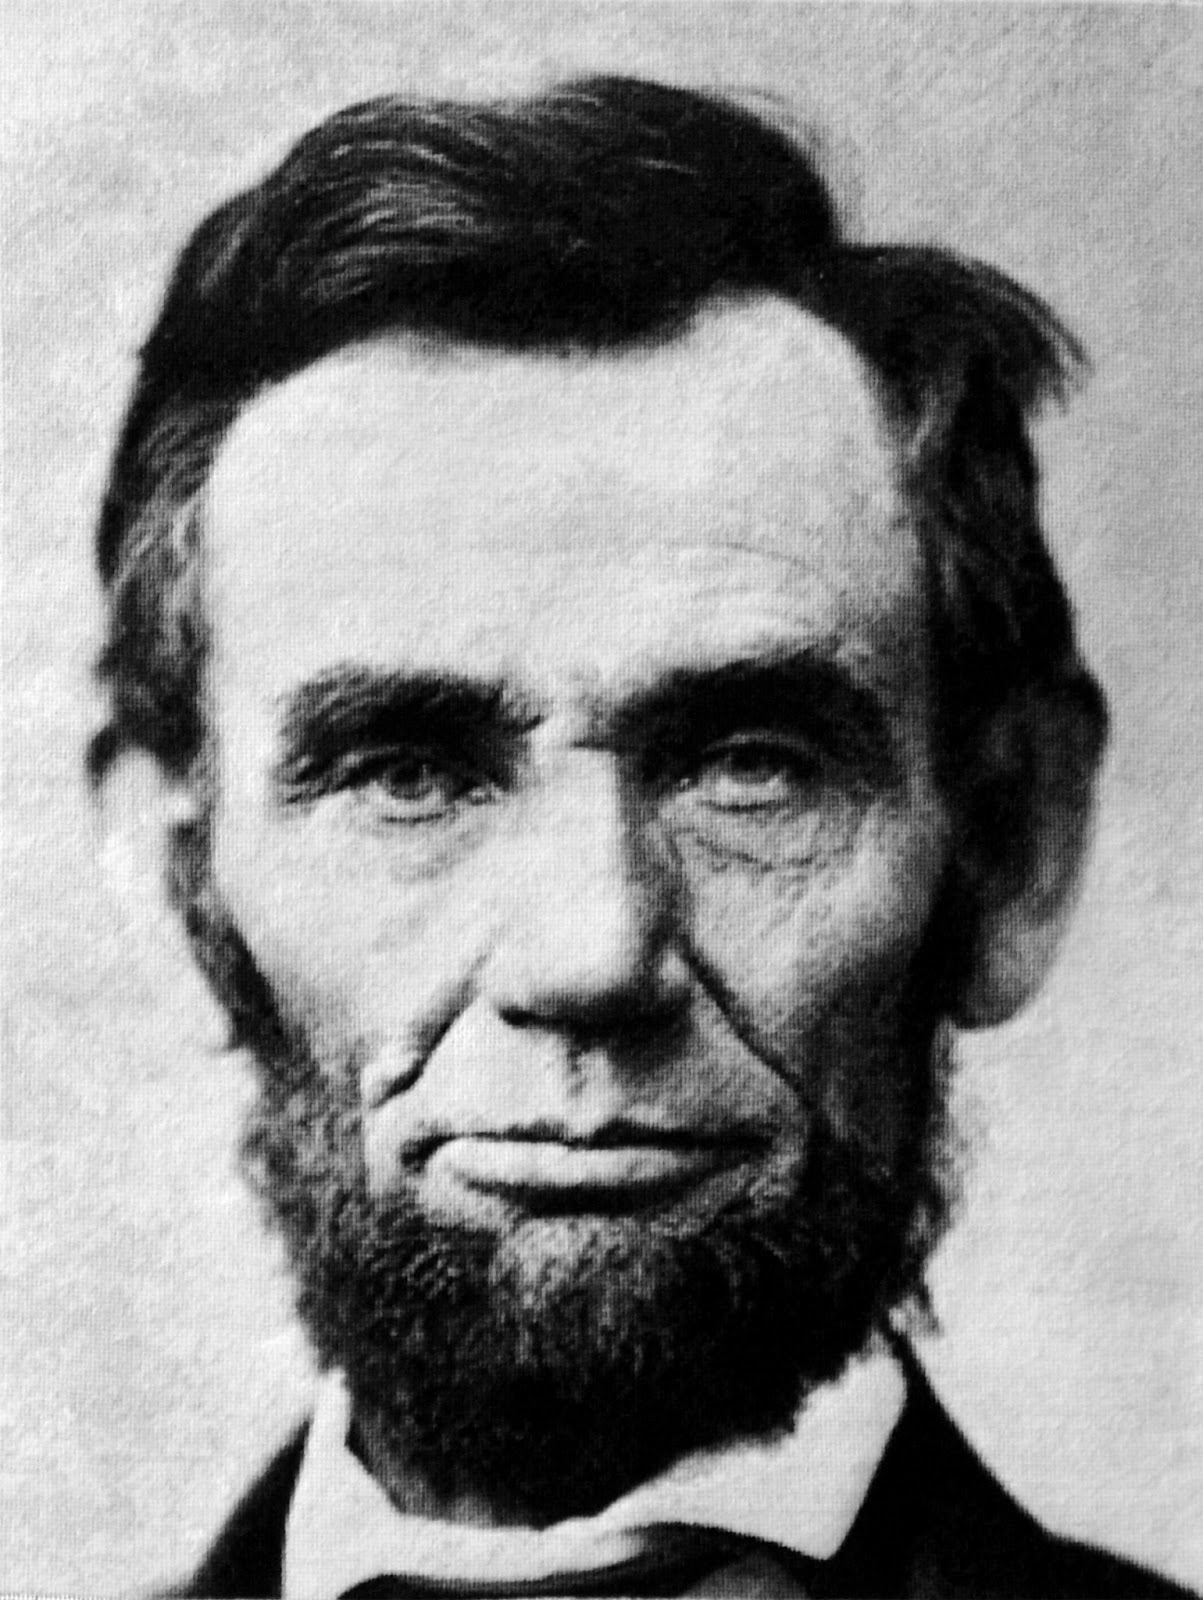 an overview of the issue of slavery in the united states in the age of lincoln The united states became polarized over the issue of slavery slavery in the united states became 7 states that seceded before lincoln's inauguration.